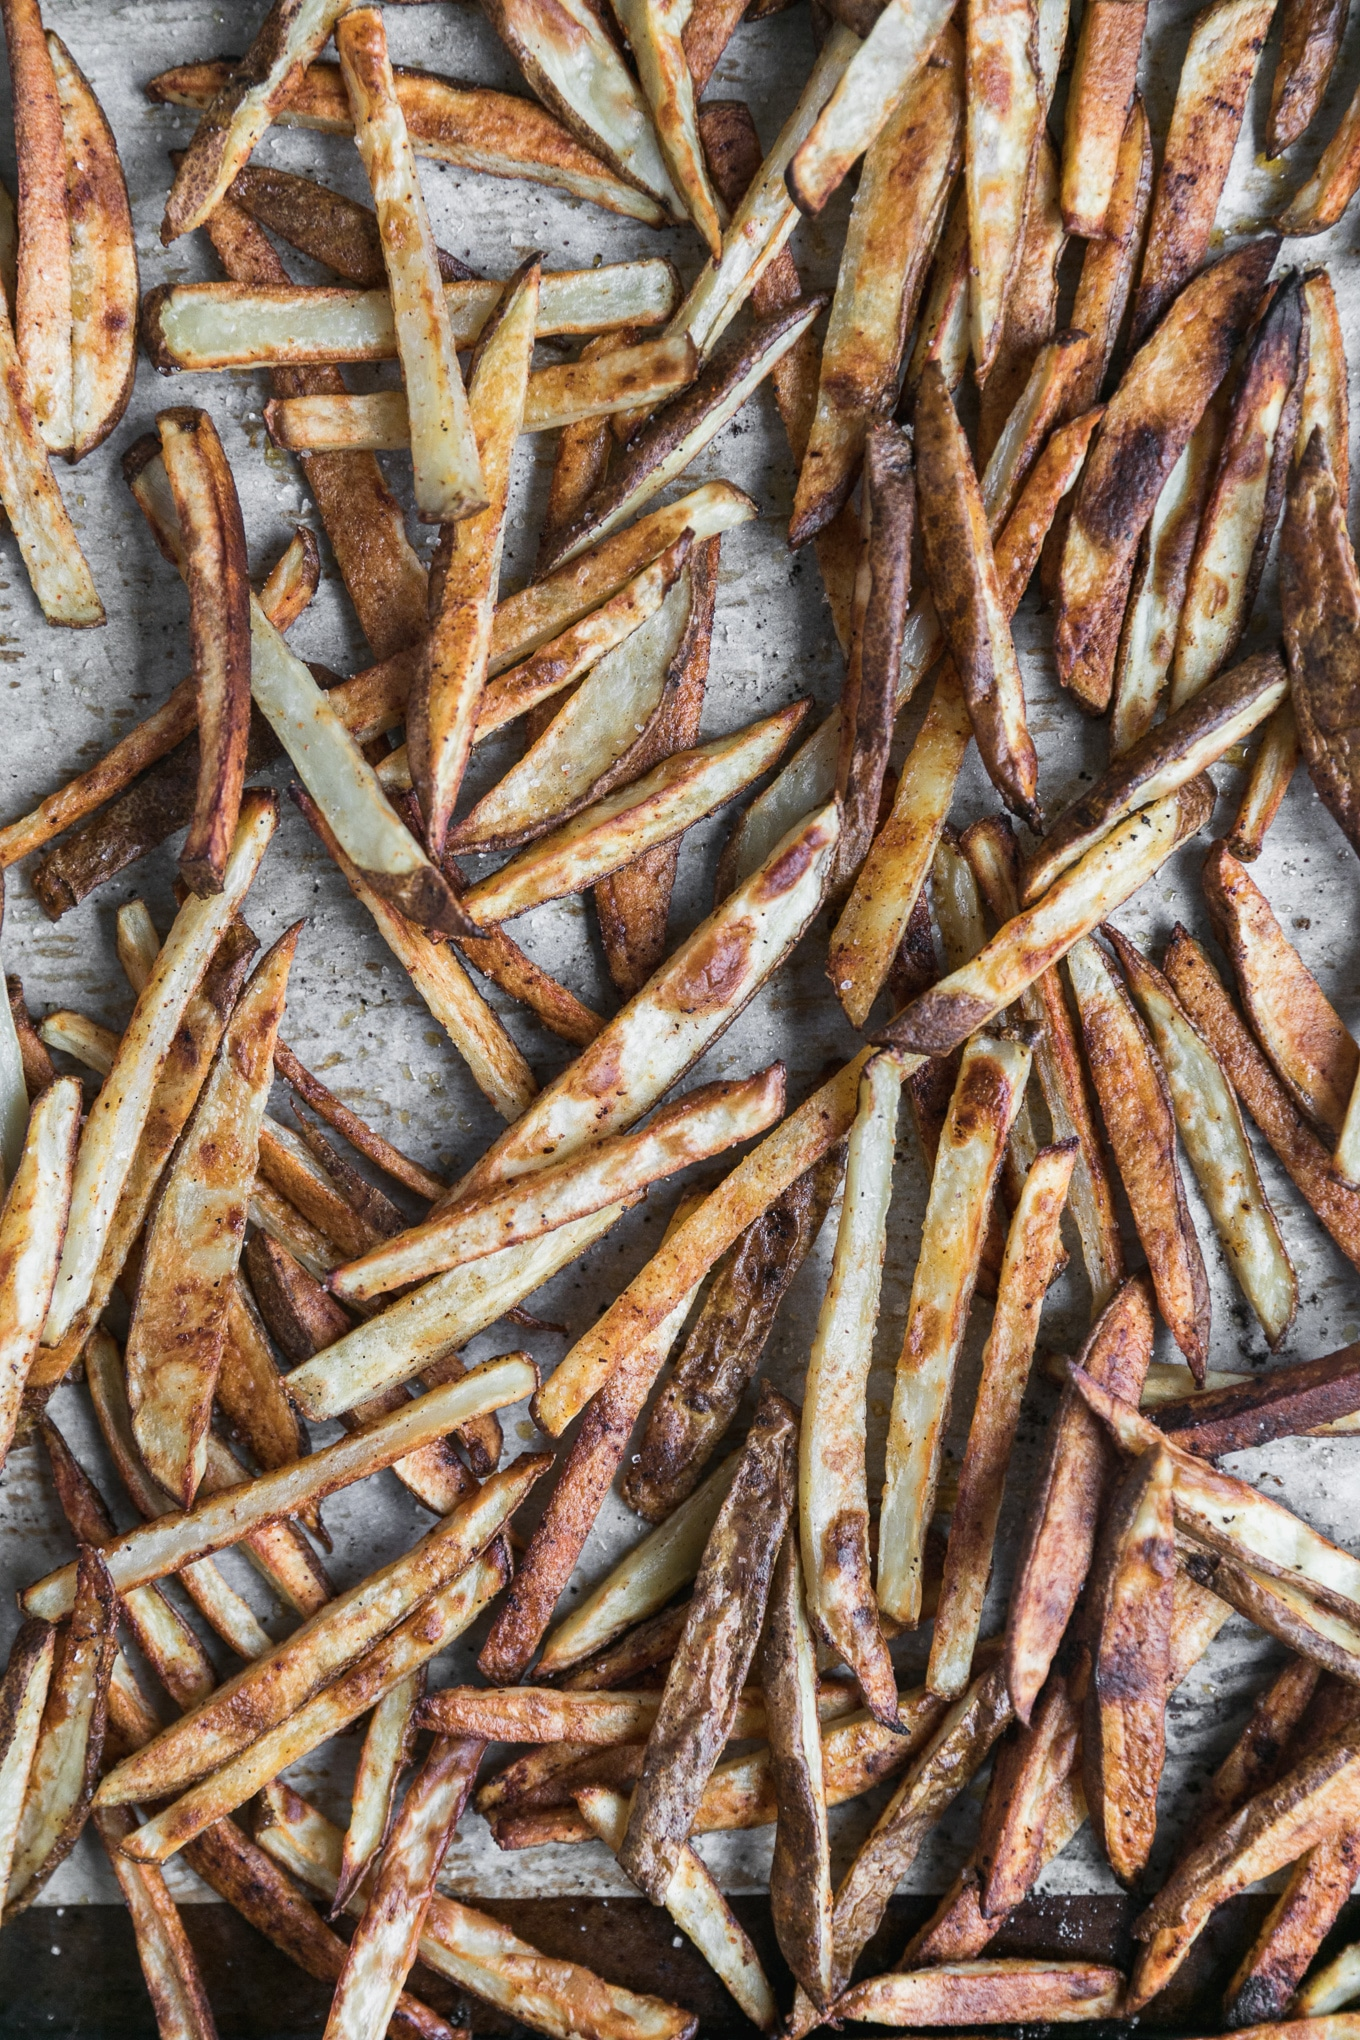 Overhead close up shot of baked golden brown fries